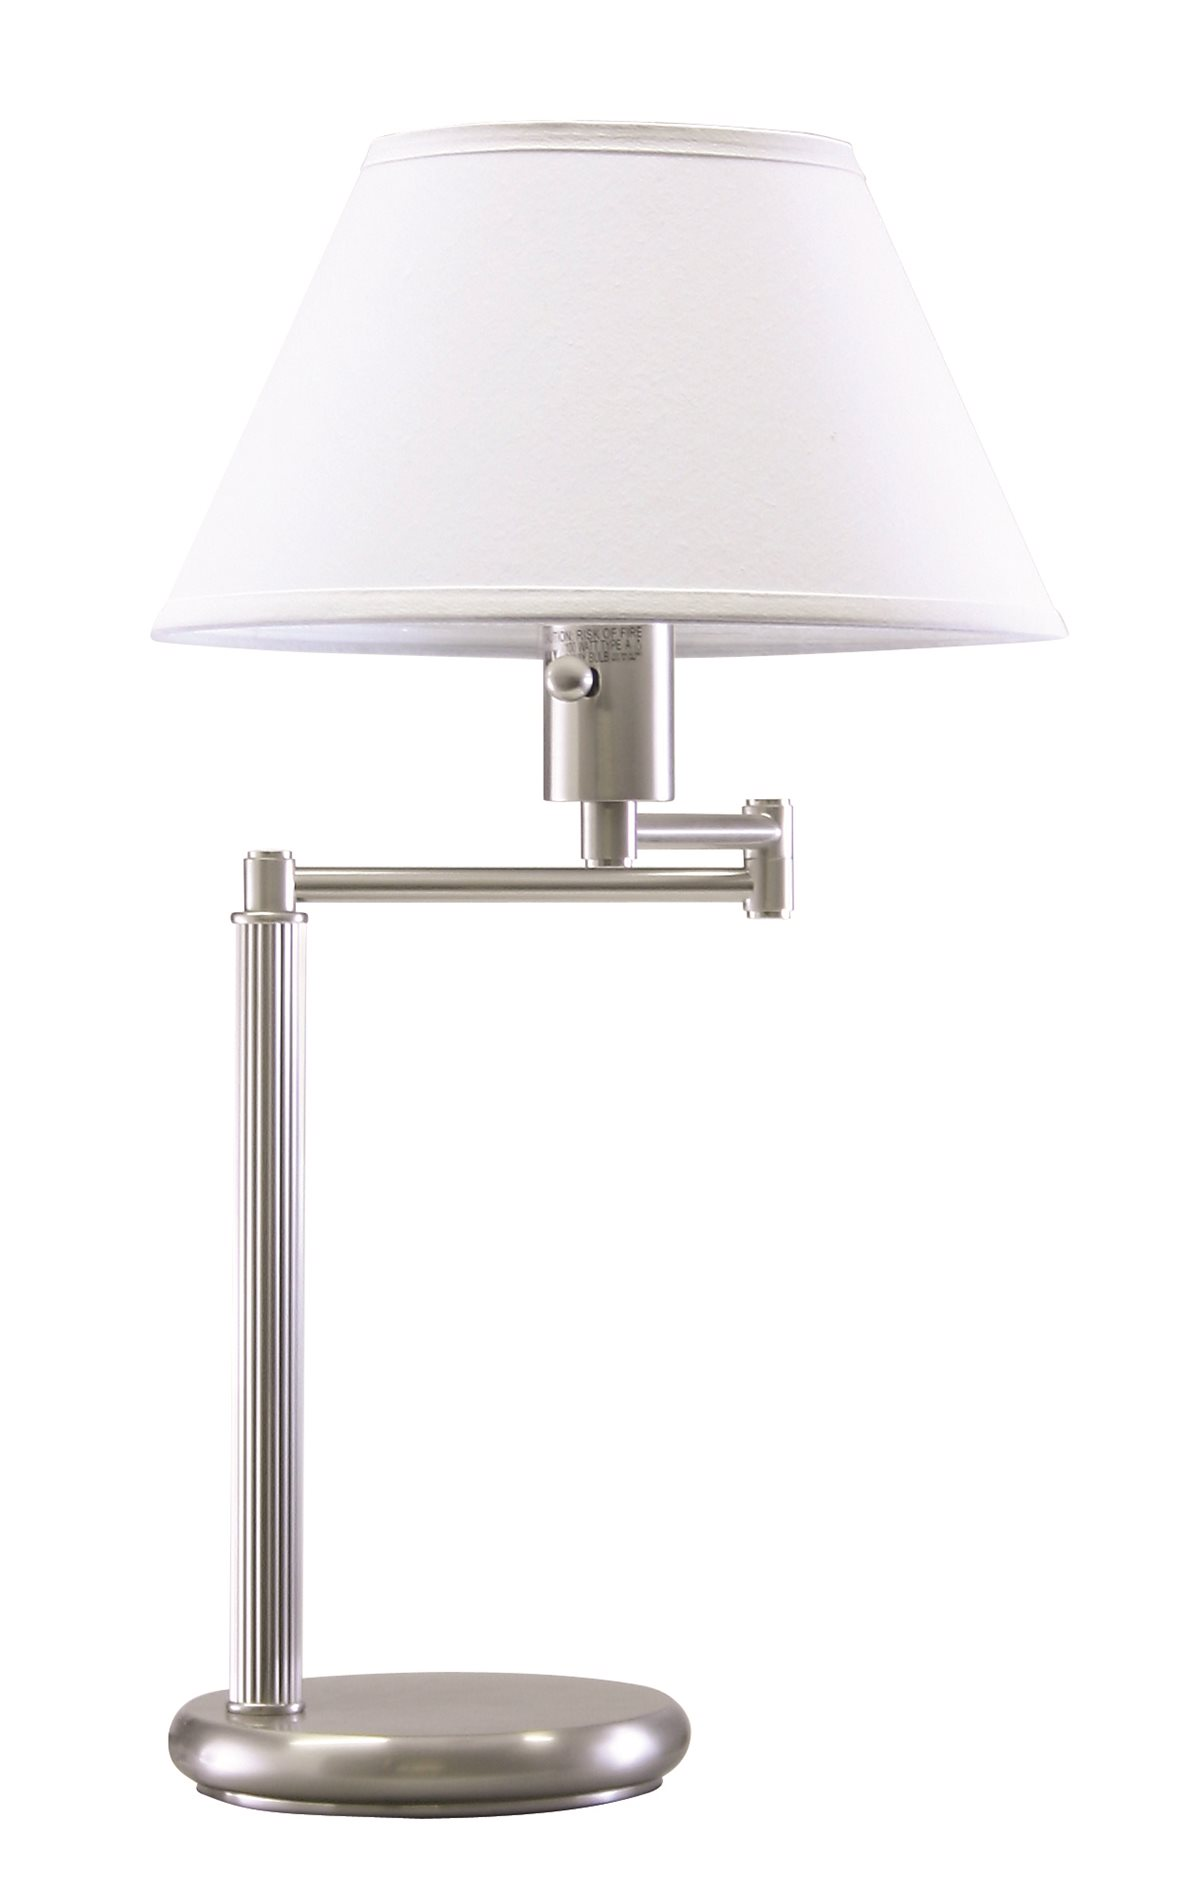 52 home office collection transitional swing arm table lamp ht d436 52